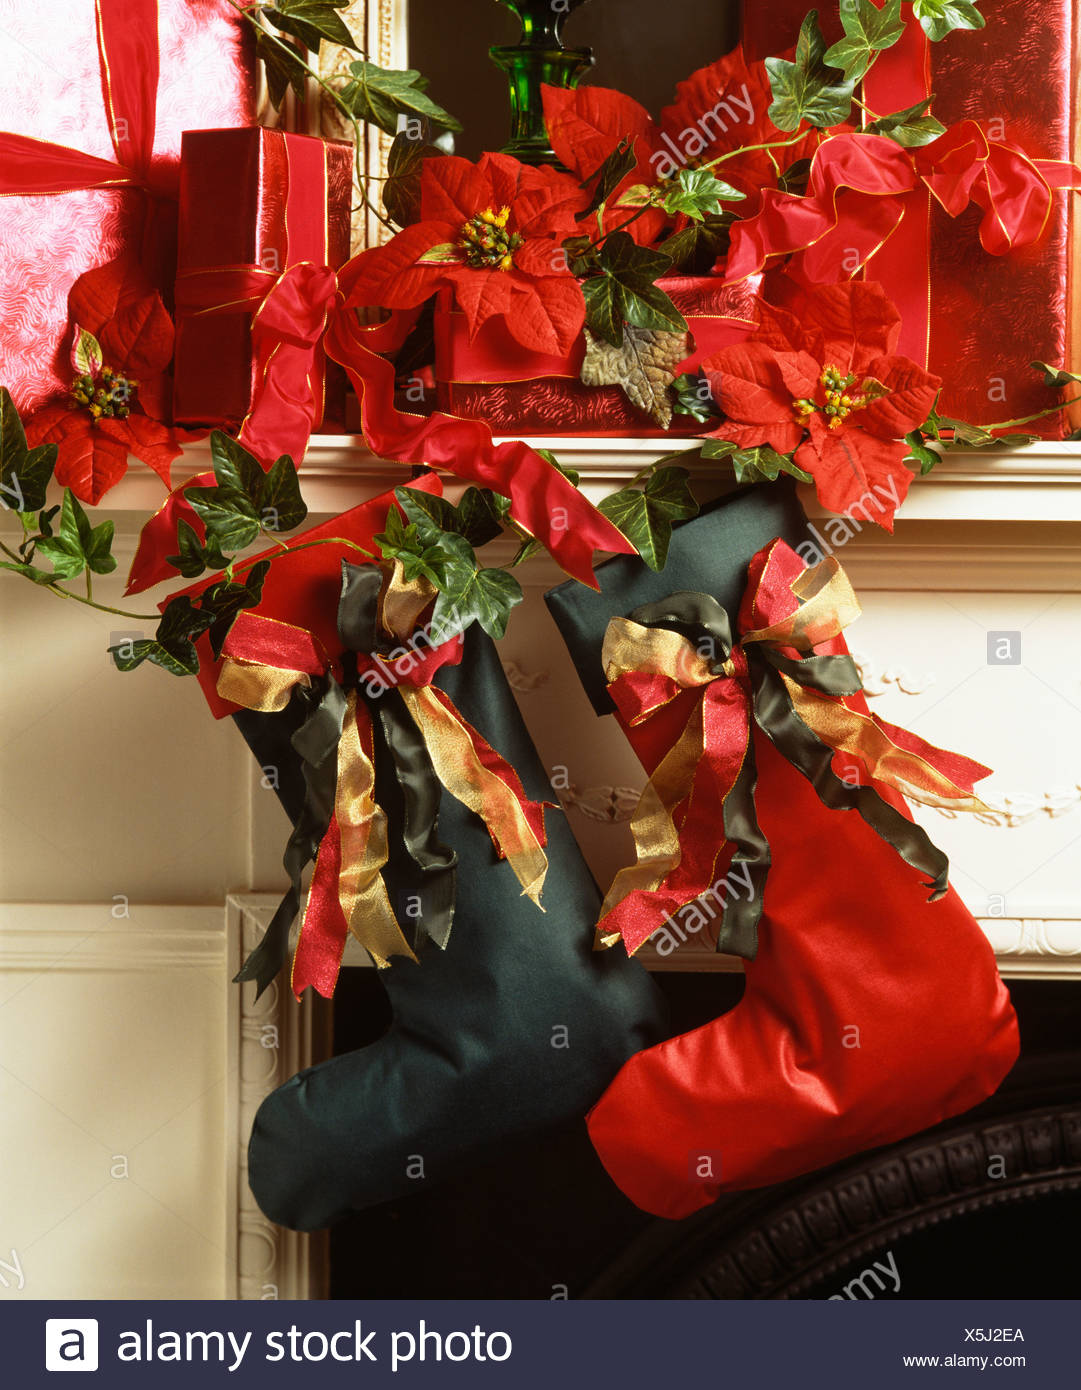 close up of red and green home made christmas stockings on mantelpiece with red artificial poinsettias - Red And Green Christmas Stockings